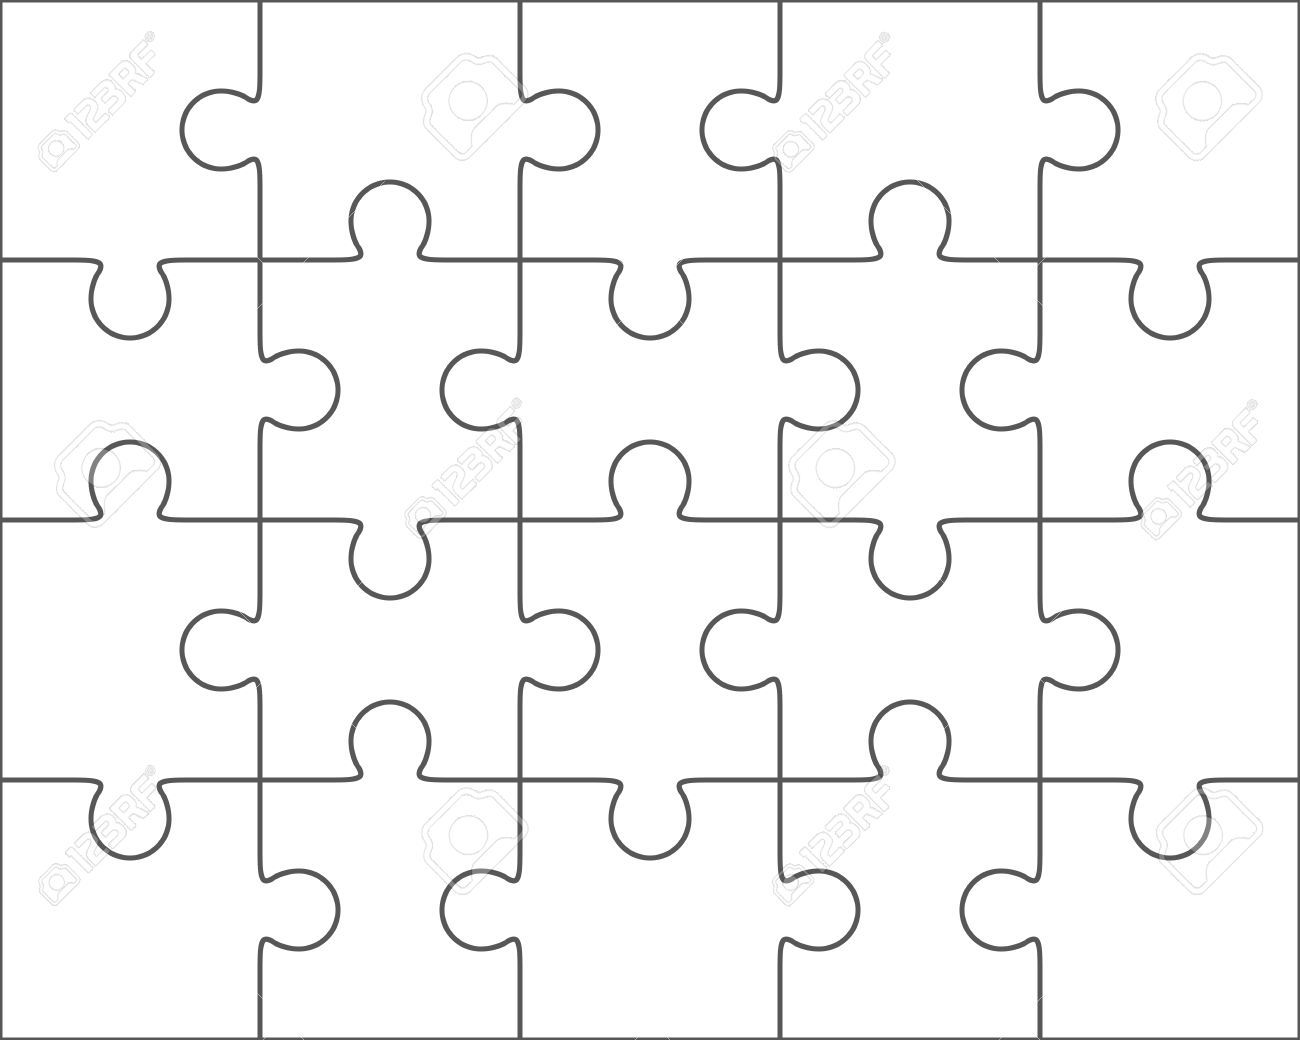 The Marvelous Jigsaw Puzzle Vector Blank Simple Template 4x5 Twenty Pieces With Blank Jigsaw Piece Template P Puzzle Piece Template Puzzle Shop Puzzle Pieces